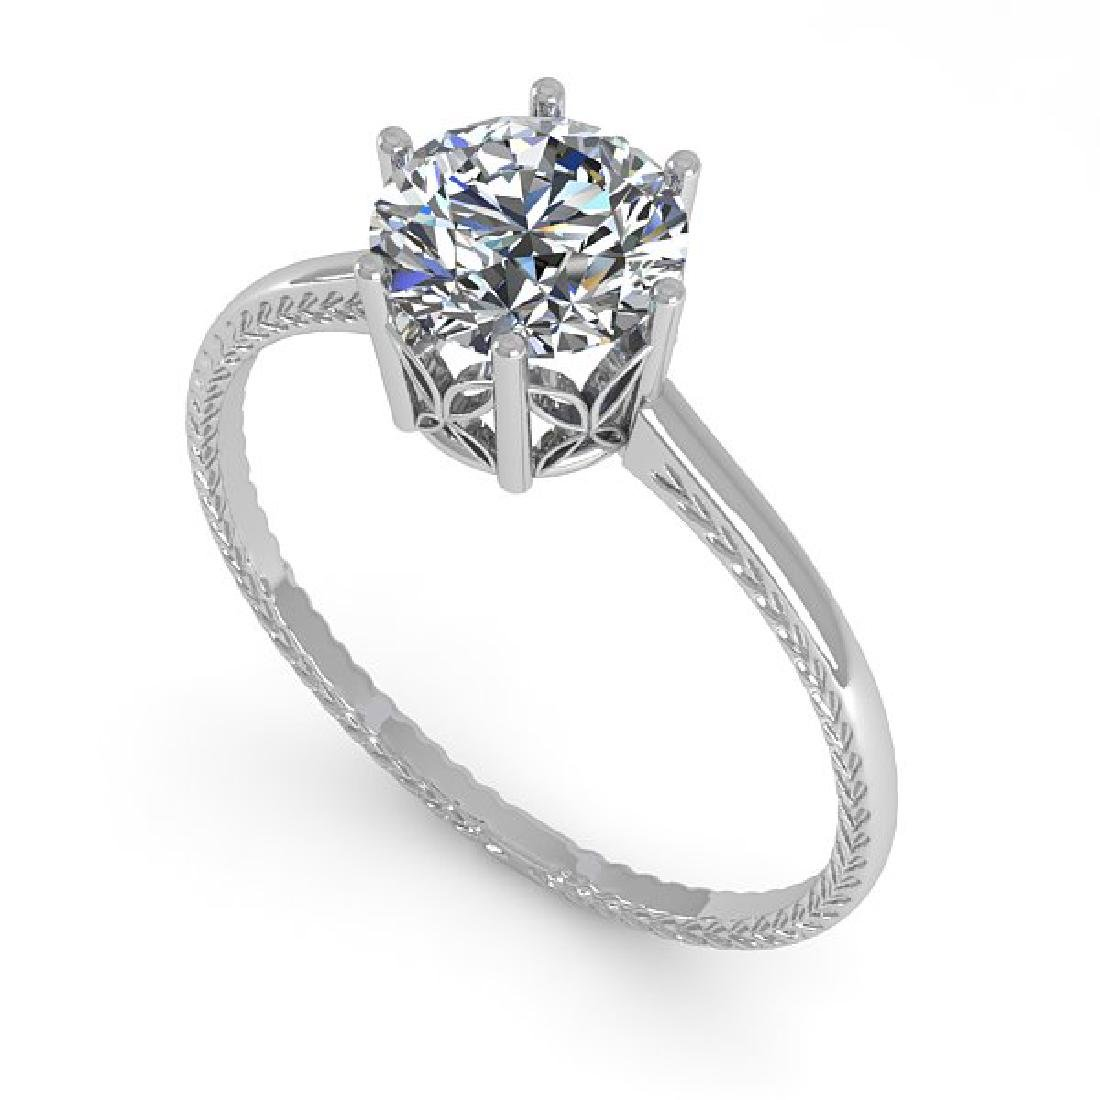 1.0 CTW VS/SI Diamond Art Deco Ring 14K White Gold - 2